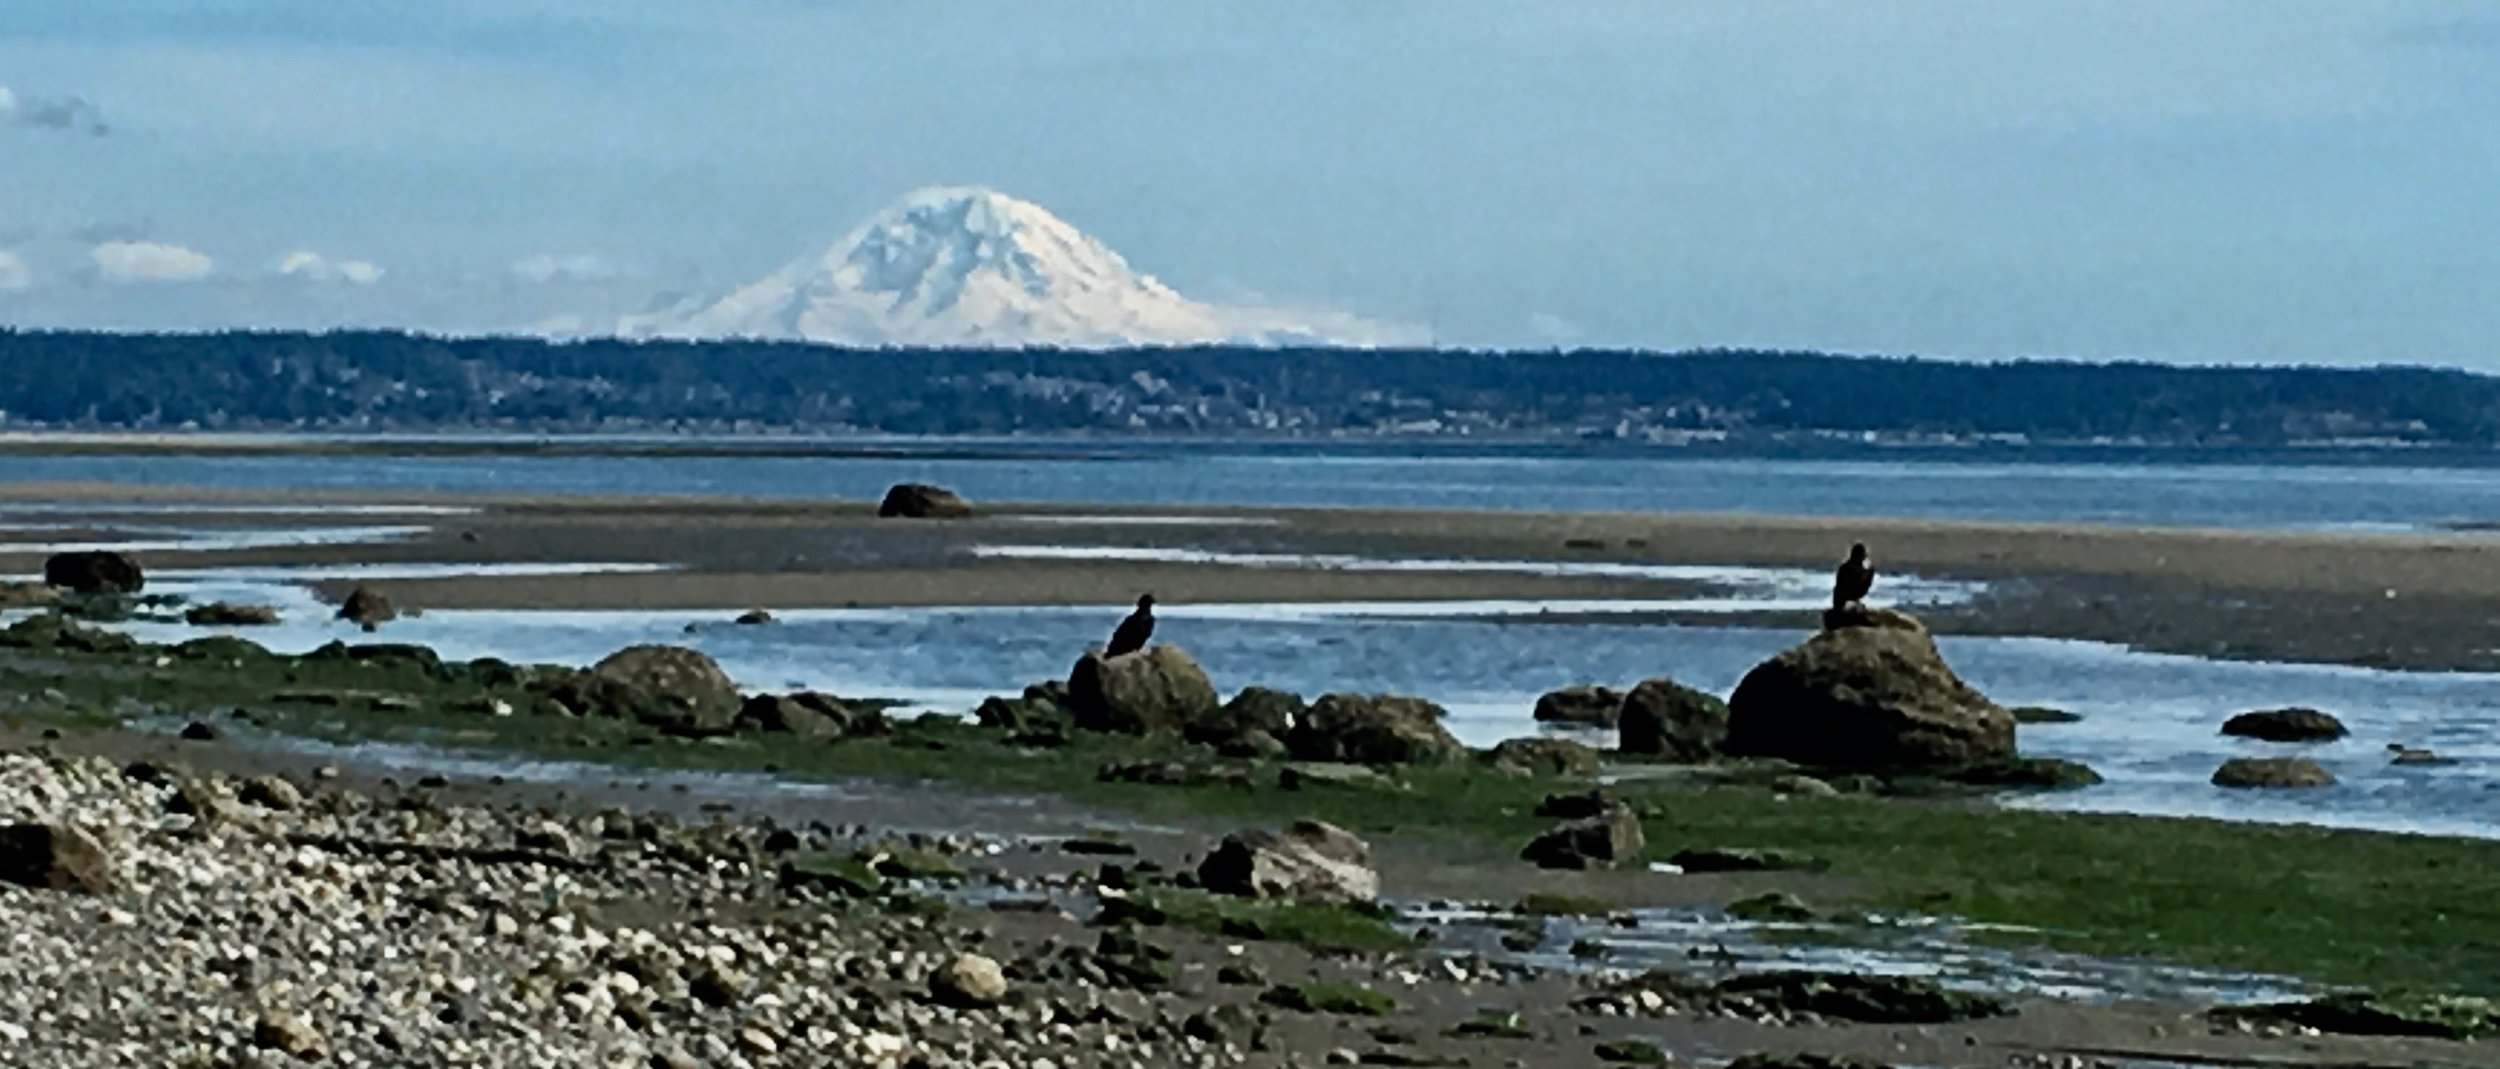 Maxwelton Beach, near my home on Whidbey Island